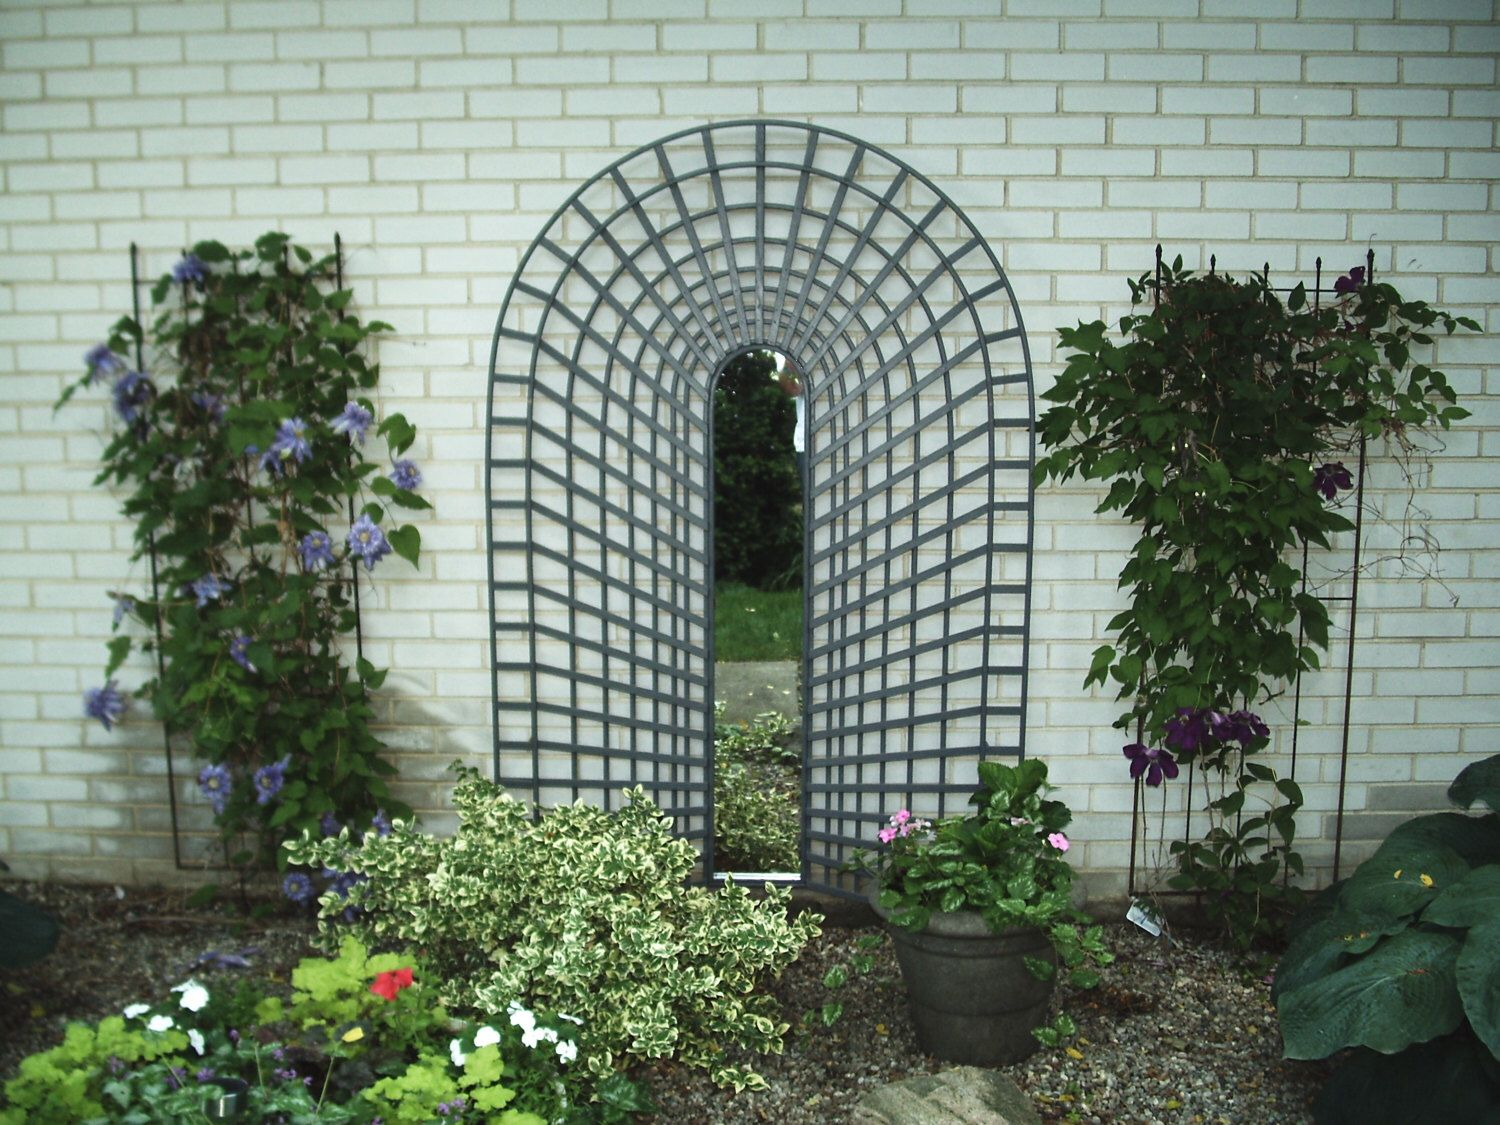 3 D Trompe L Oeil Garden Trellis With Mirror With Images